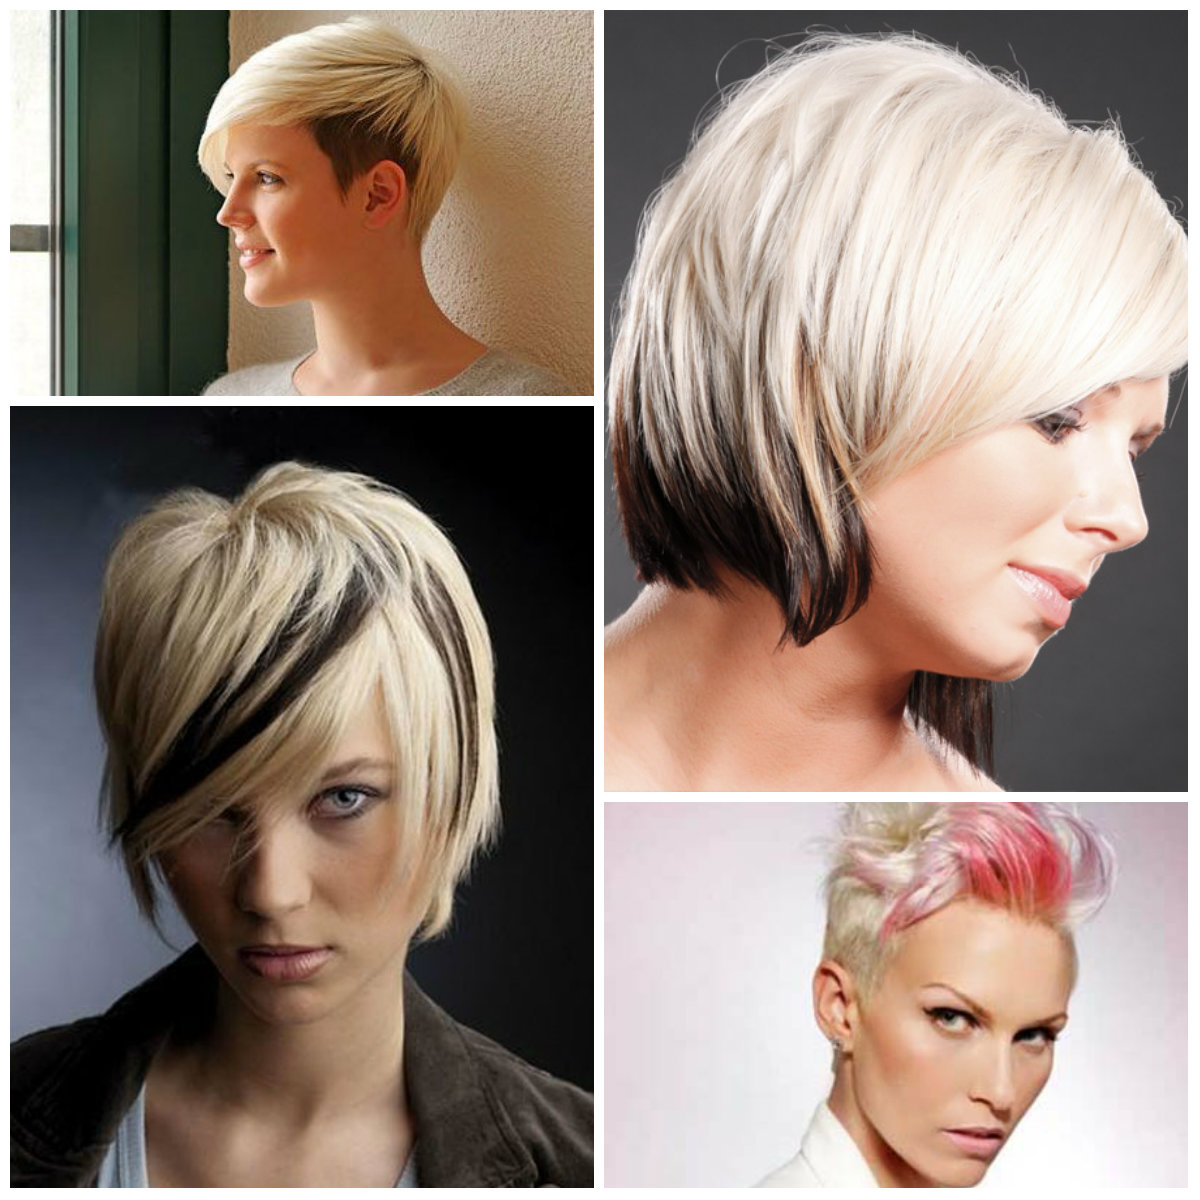 Short Hairstyles And Color For Women | Trend Hairstyle and Haircut Ideas